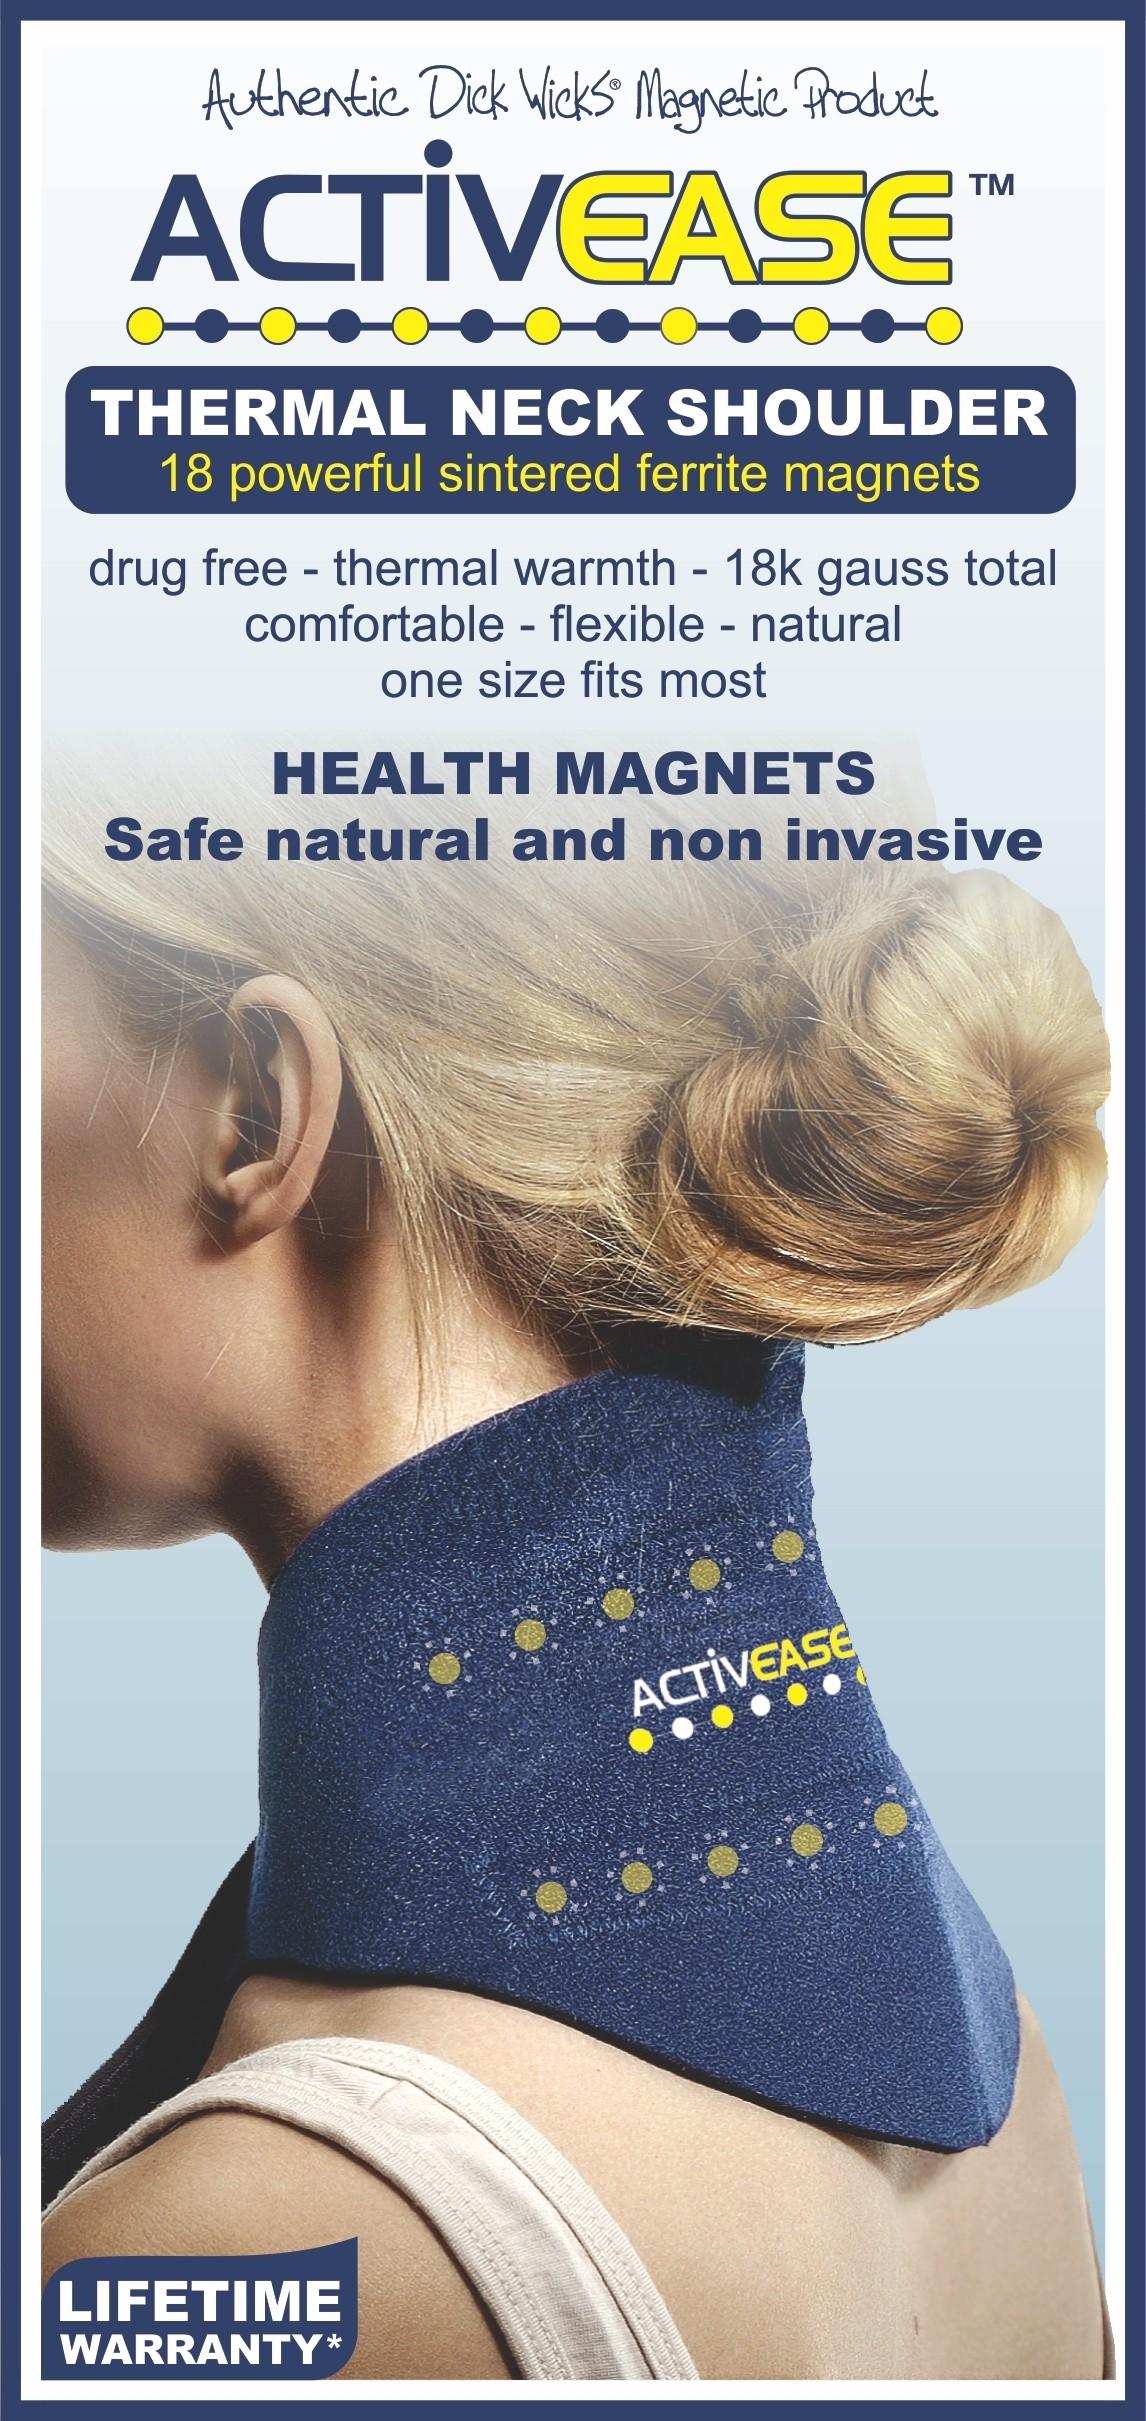 Activease Thermal Neck Support with Magnets by Dick Wicks